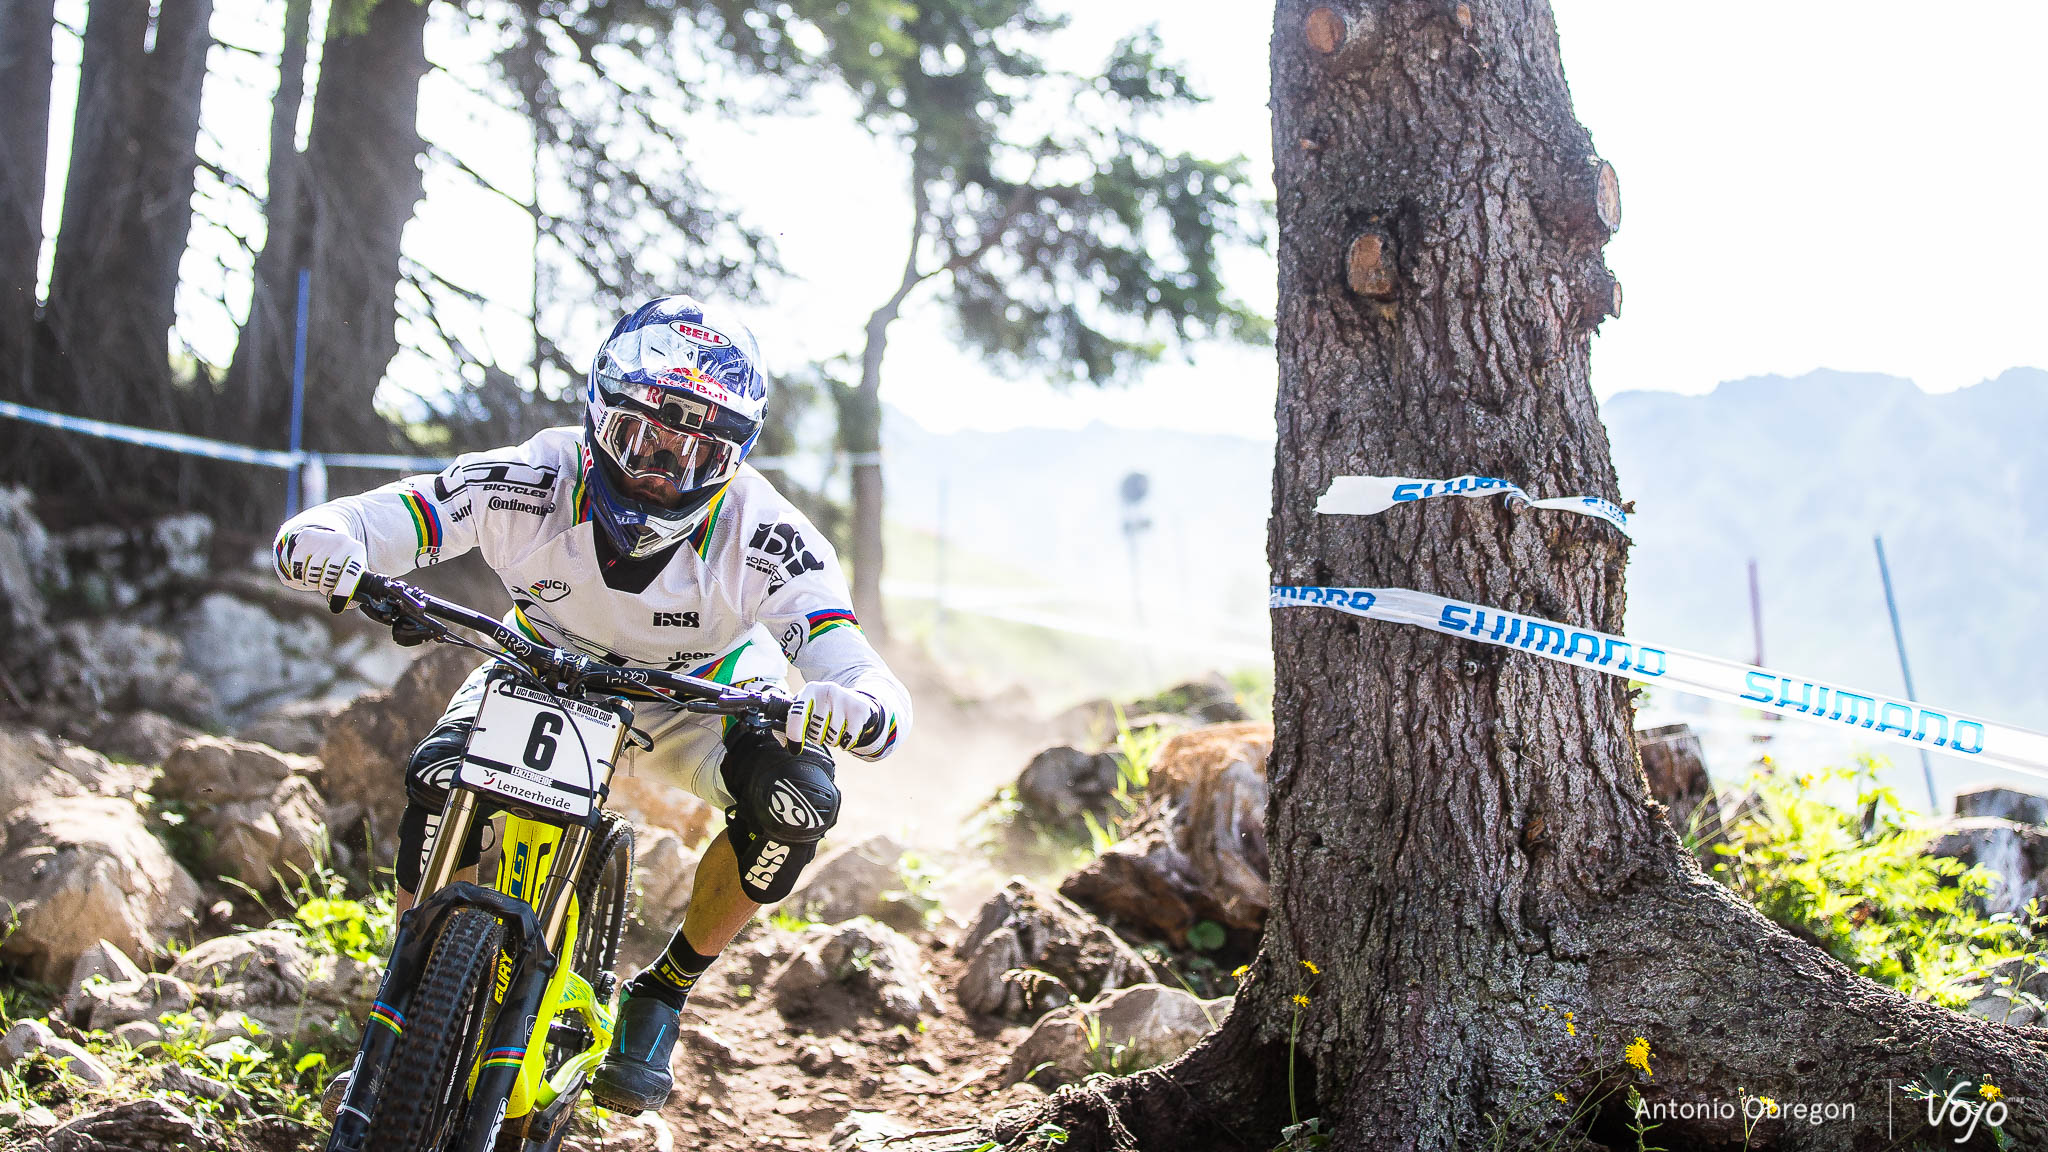 Lenzerheide_UCI_World_Cup_DH_2015_final_Porfoli_Elite_Copyright_Antonio_Obregon_VojoMag-42